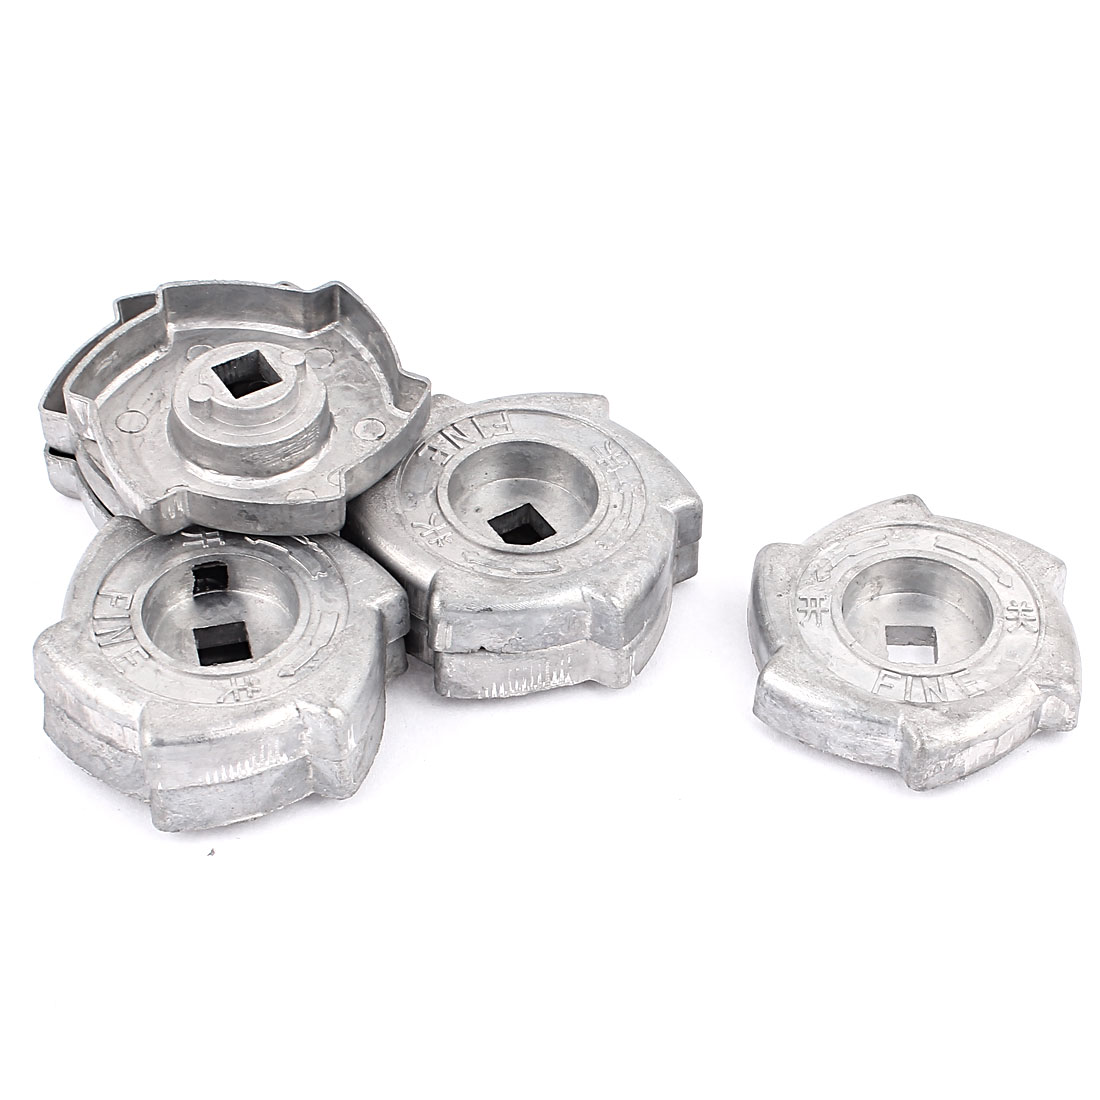 Family Handy Tool Kitchen Gas Stove Range Cooktop Alloy Rotary Switch Knob Gray 8 Pcs